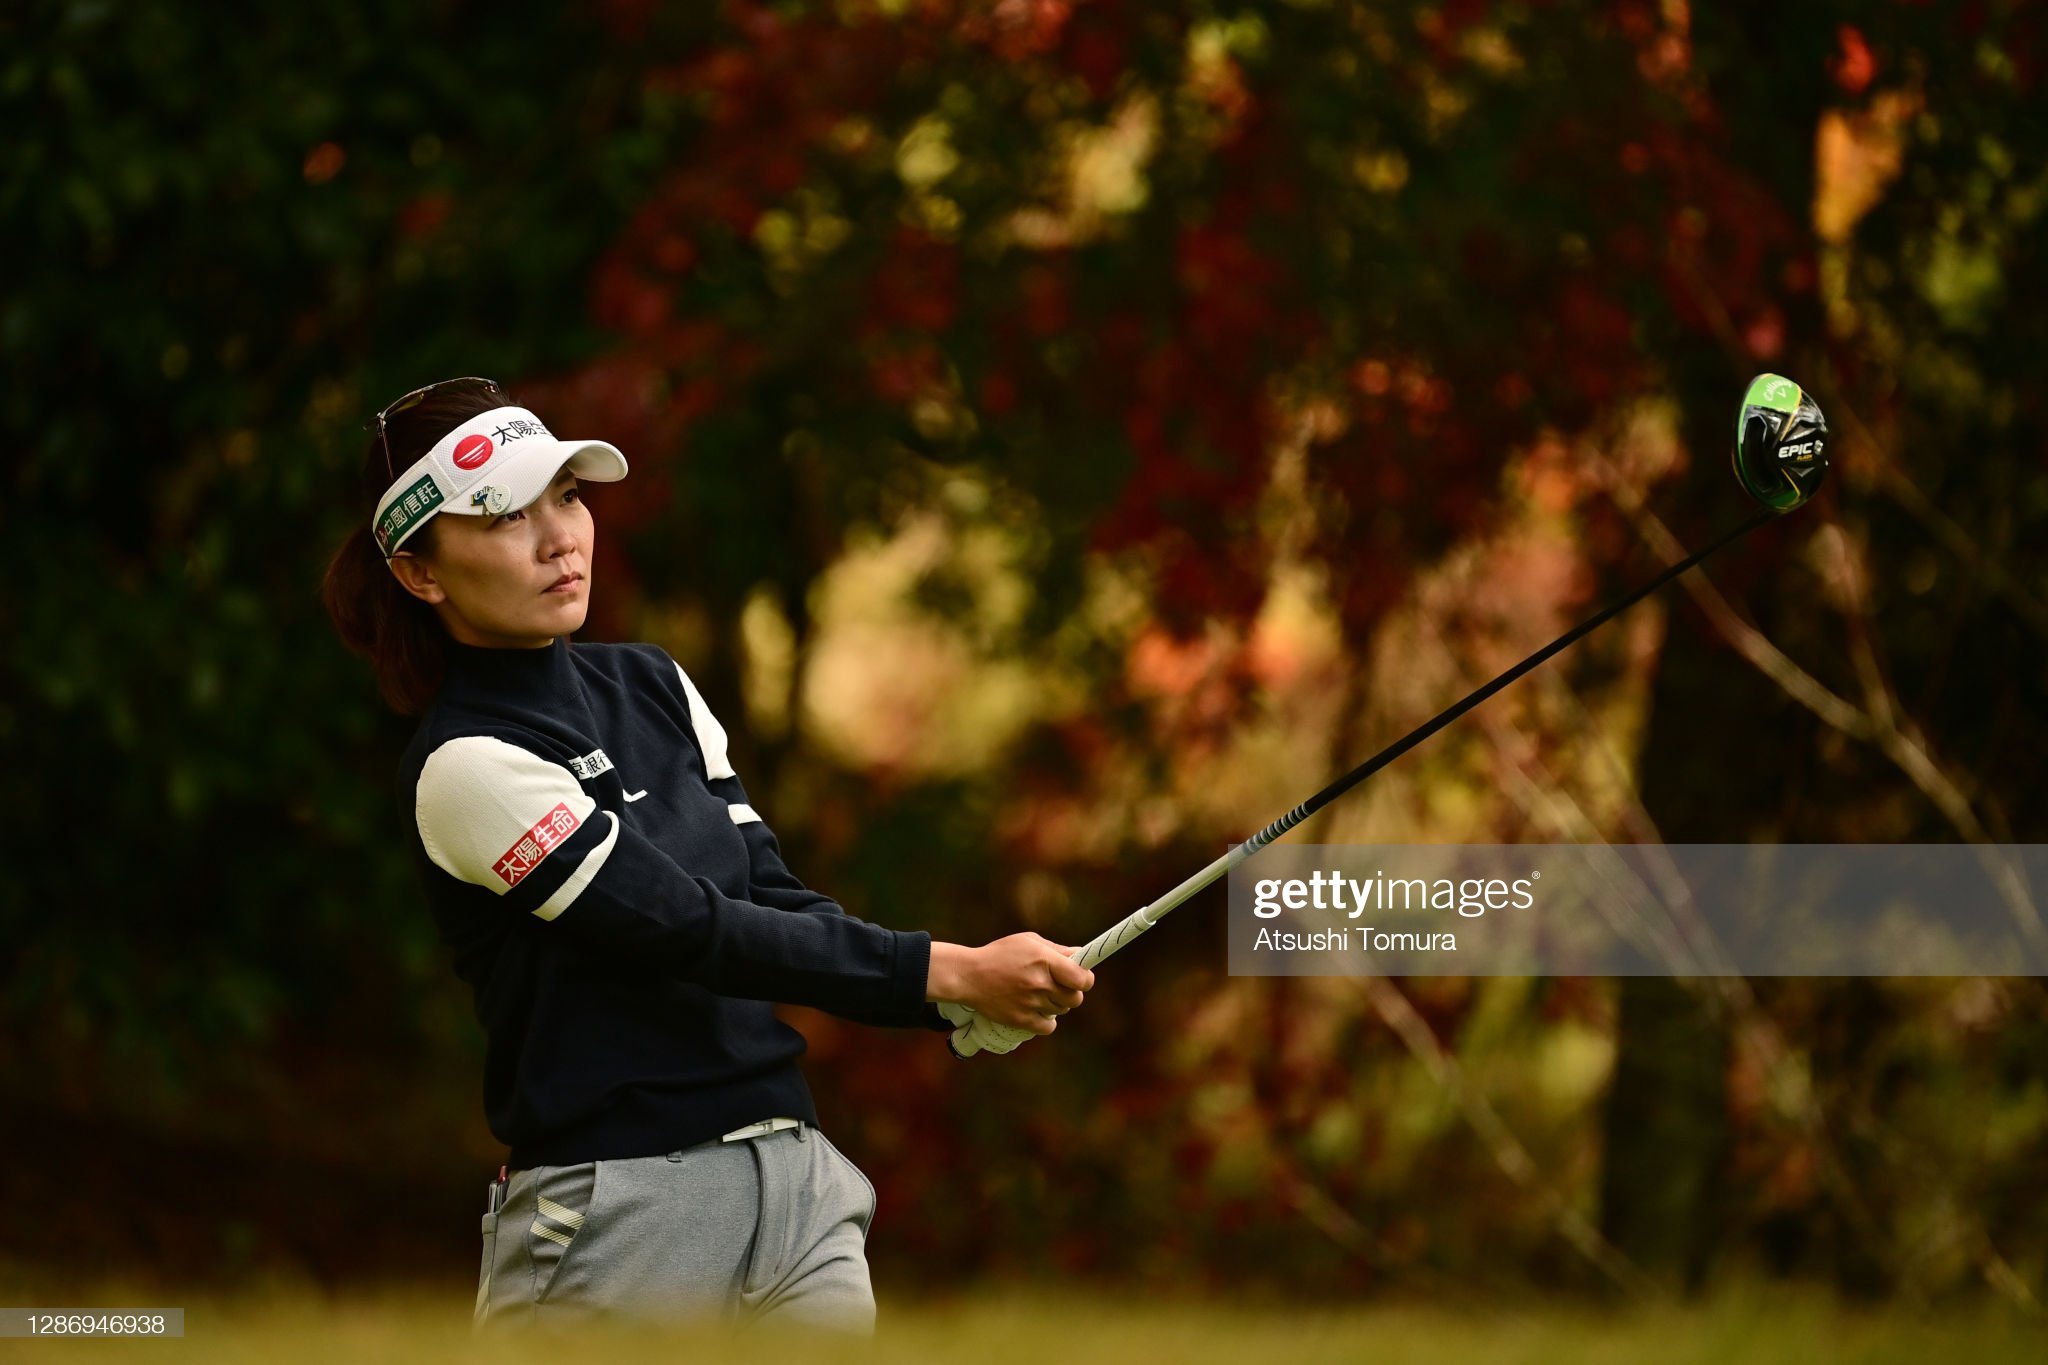 https://media.gettyimages.com/photos/teresa-lu-of-chinese-taipei-hits-her-tee-shot-on-the-2nd-hole-during-picture-id1286946938?s=2048x2048